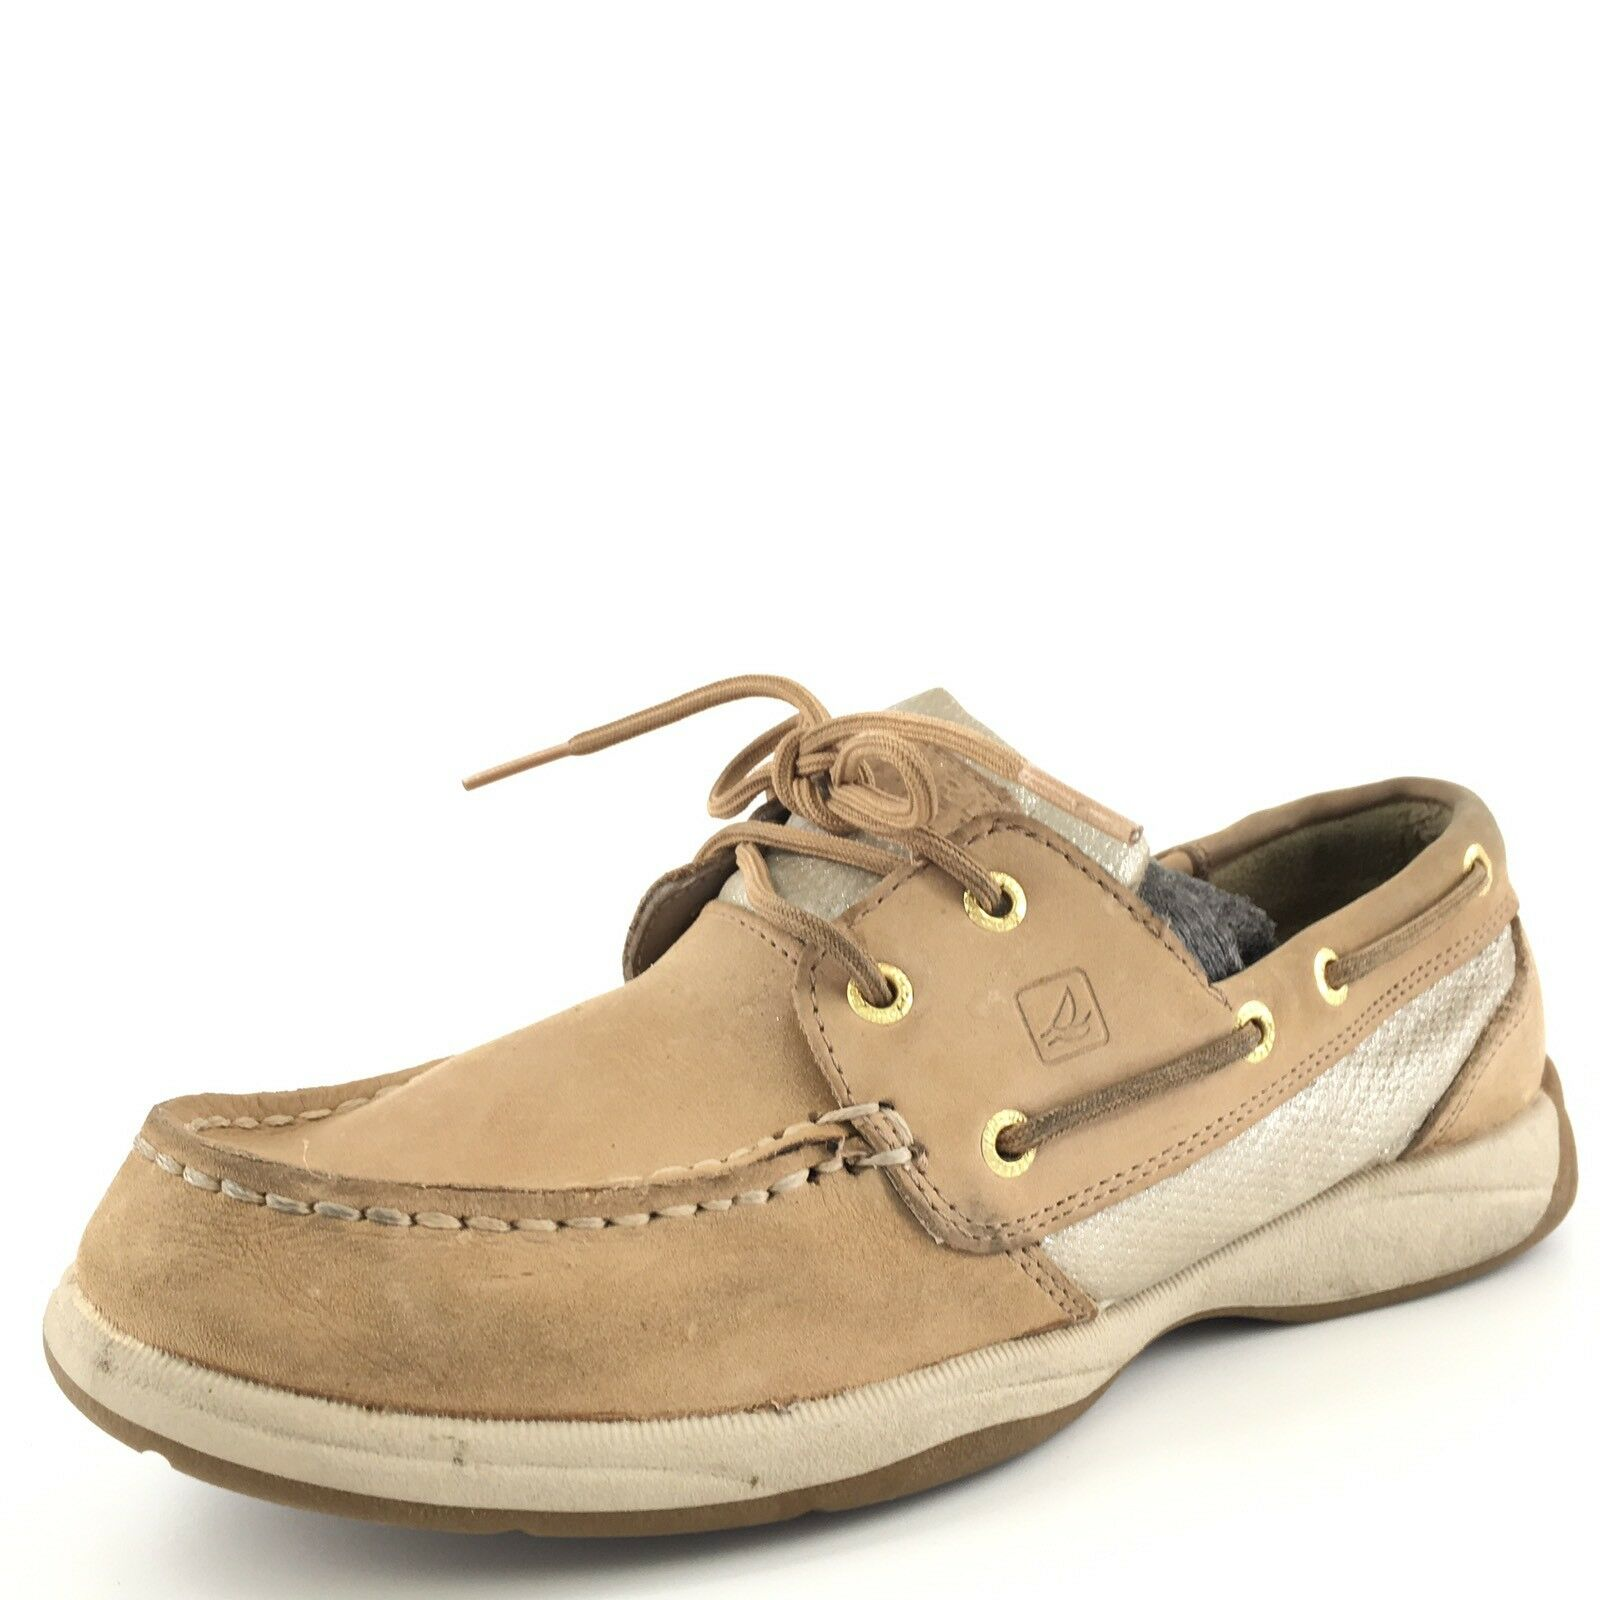 Sperry Top Sider Interprid Tan Leather Dock Boat shoes Women's Size 8 M